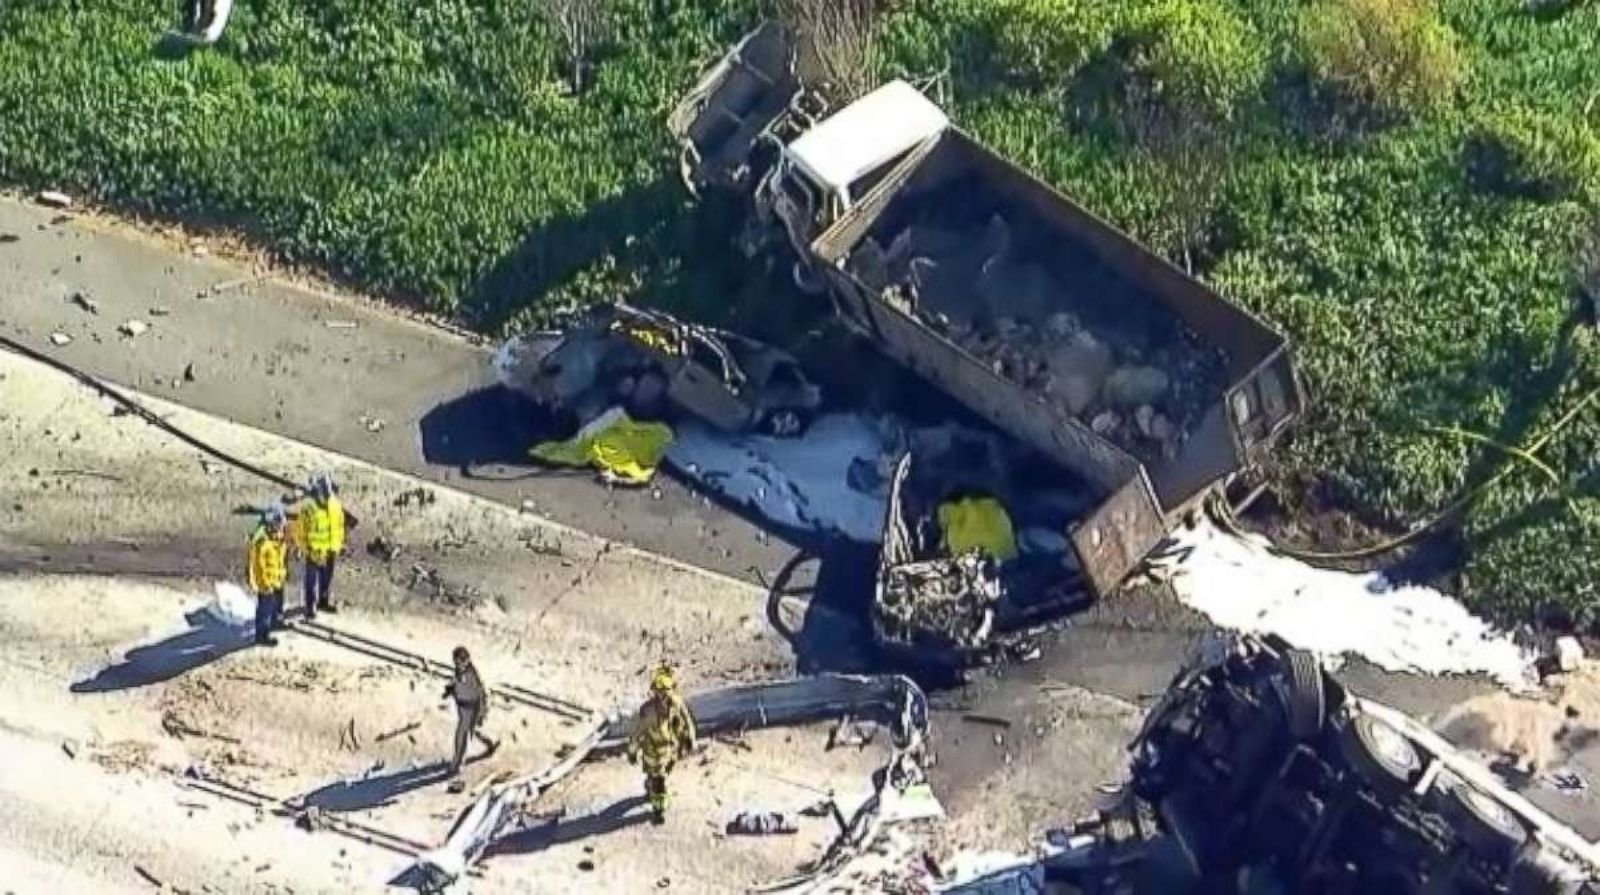 5 killed as semitrailer plows into cars in fiery crash on California